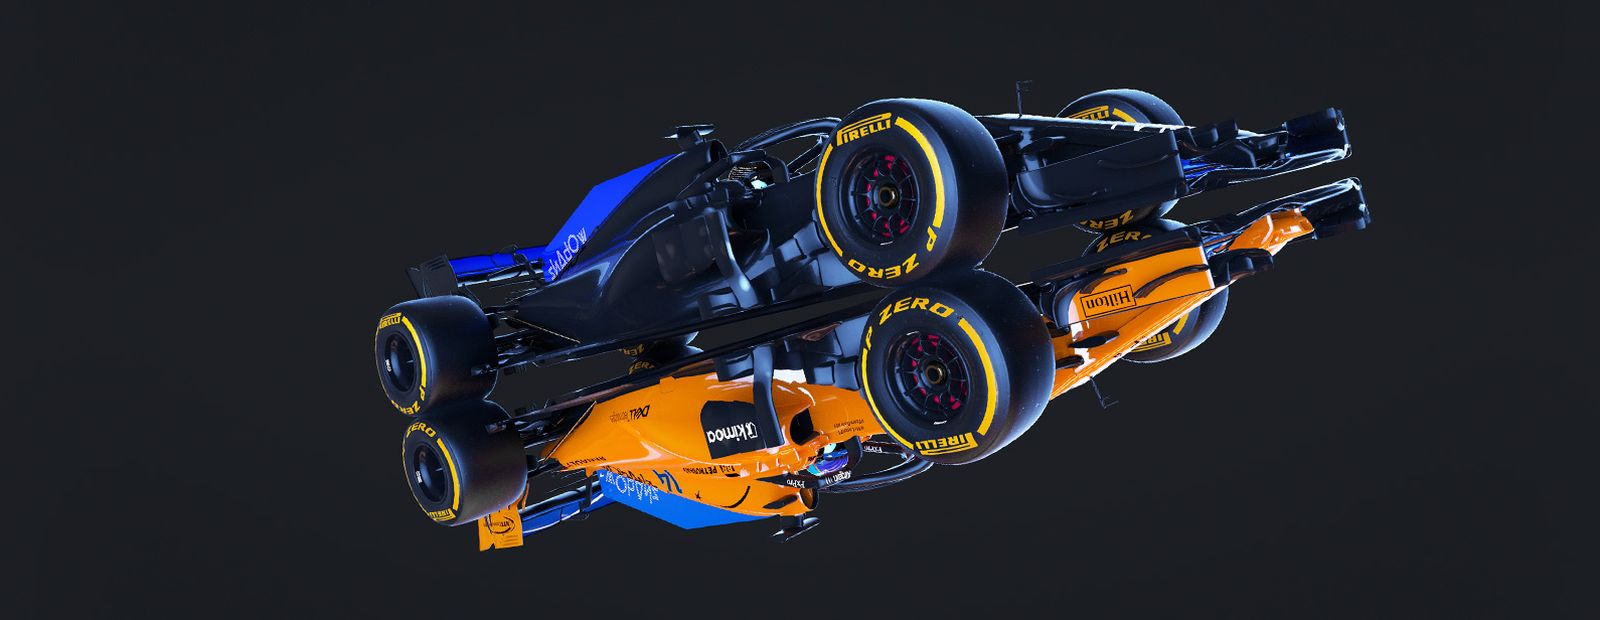 McLaren Shadow season 1